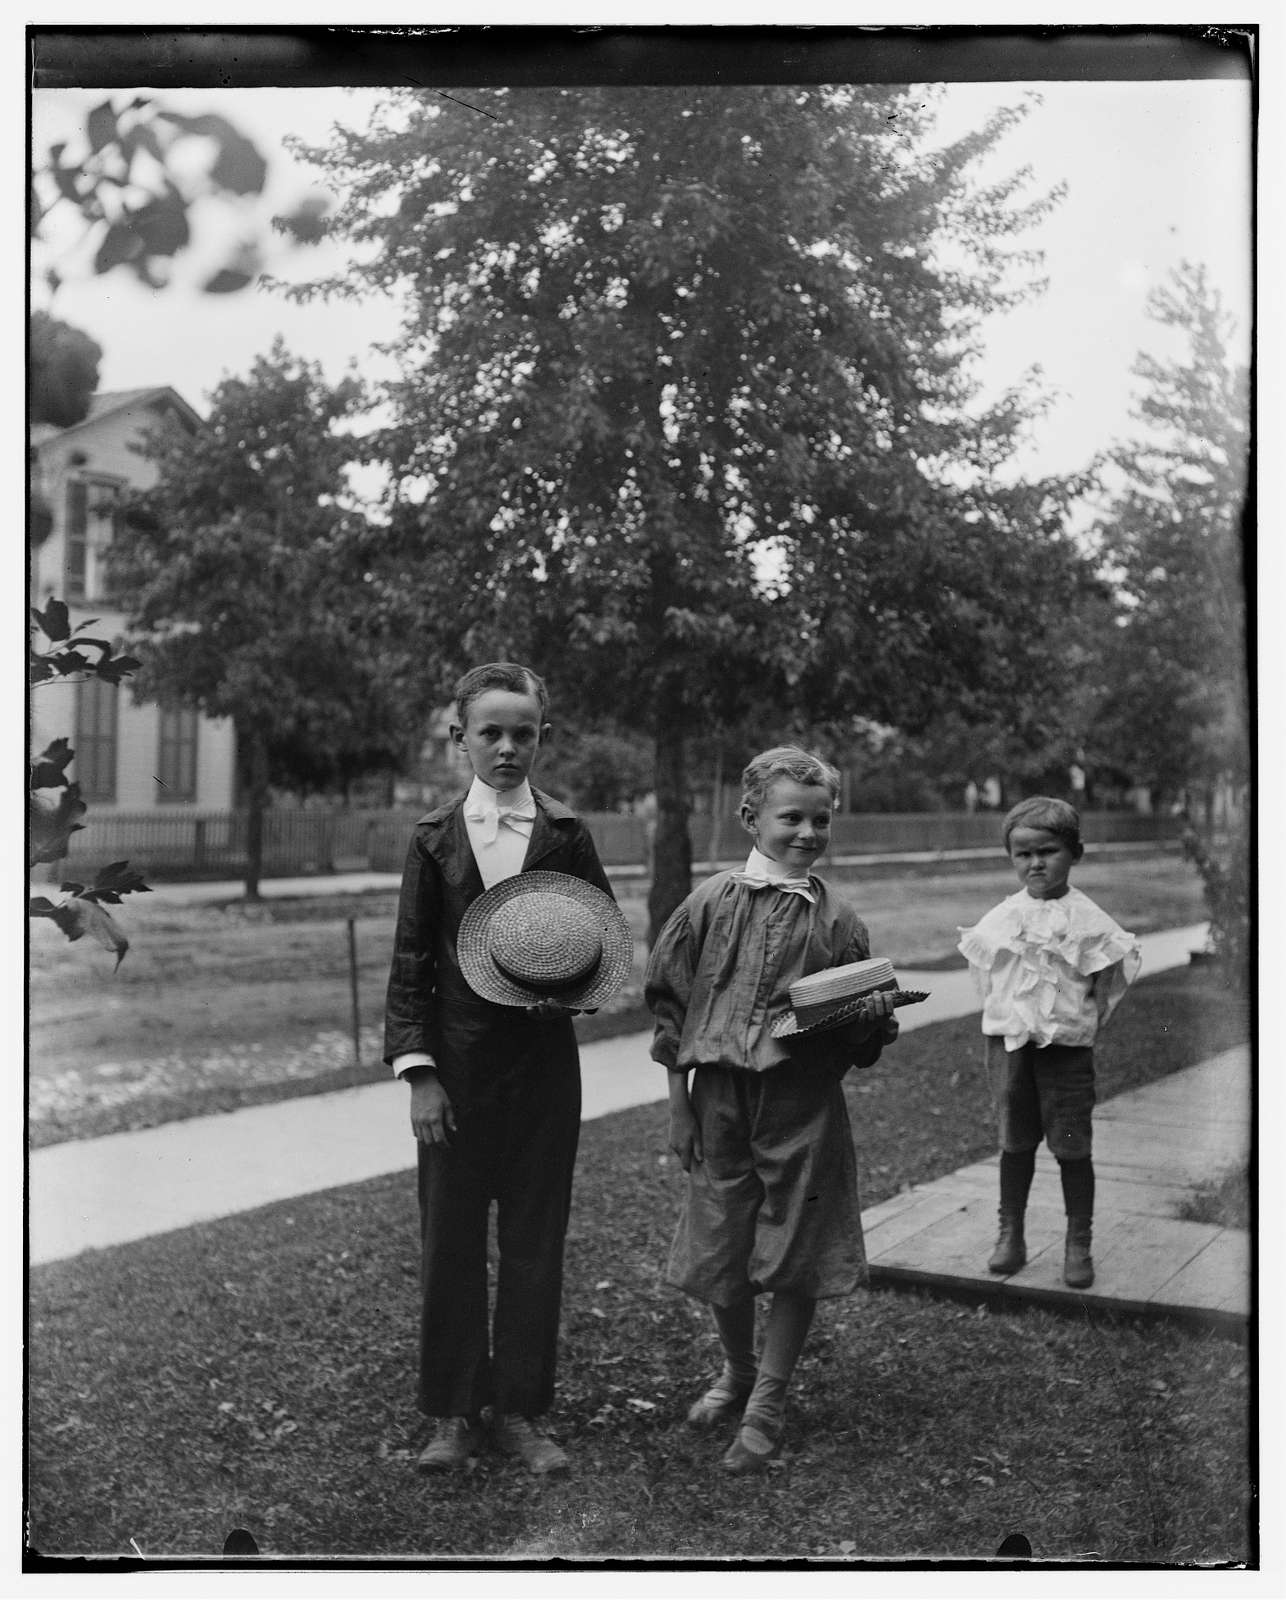 [Lester, Willie and Paul Henderson, neighbors of Wilbur and Orville Wright in Dayton, Ohio]